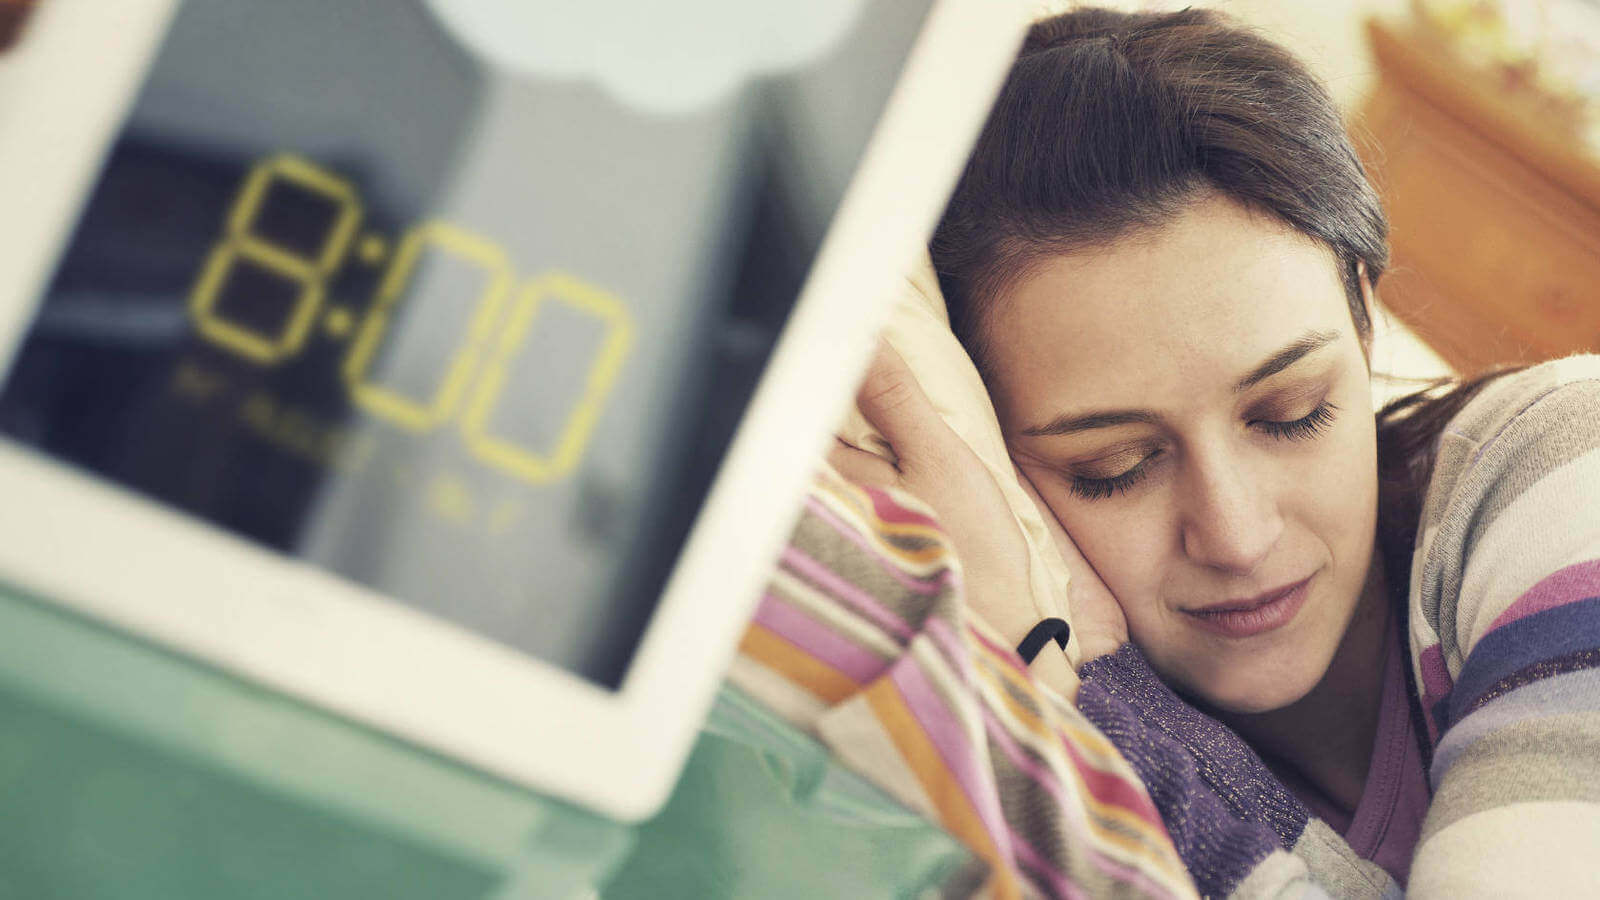 A closeup of a digital watch with a woman sleeping in the background.